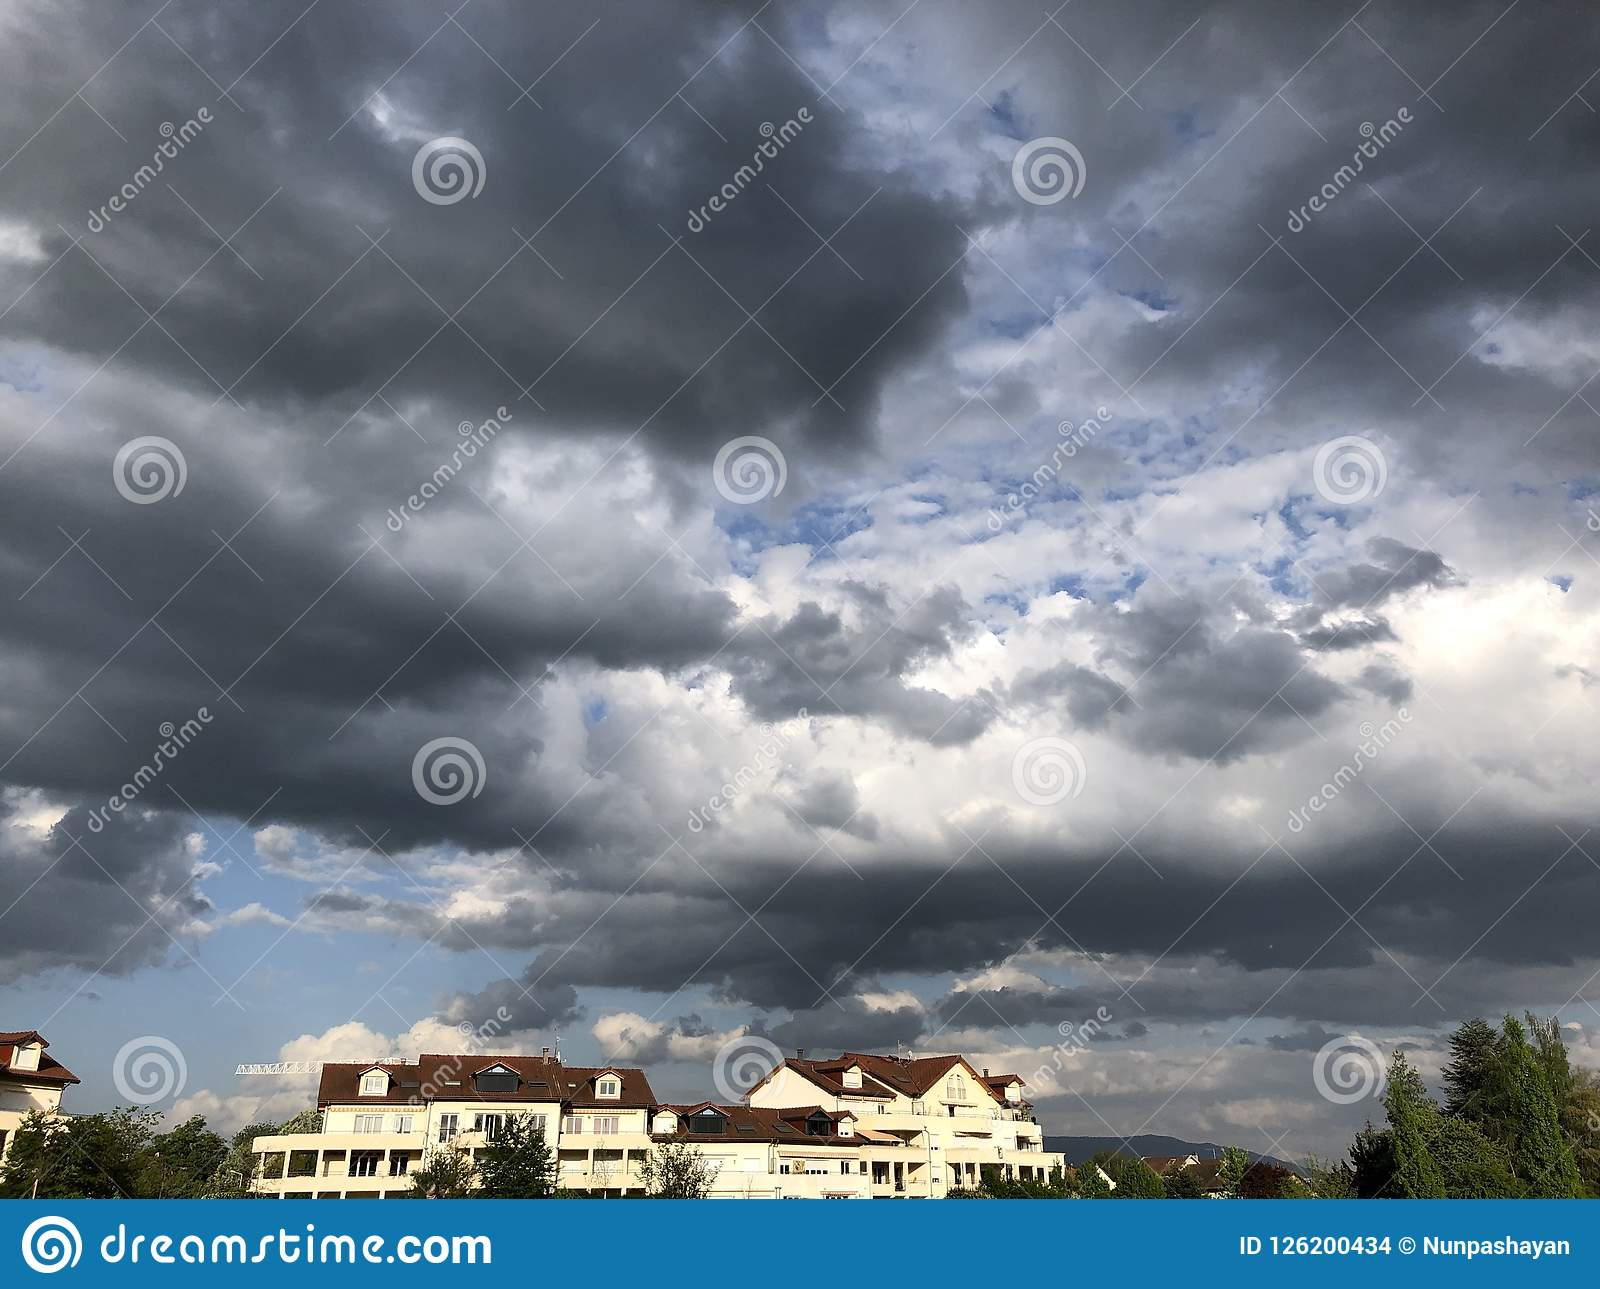 Thunderclouds over the houses in Ferney-Volter